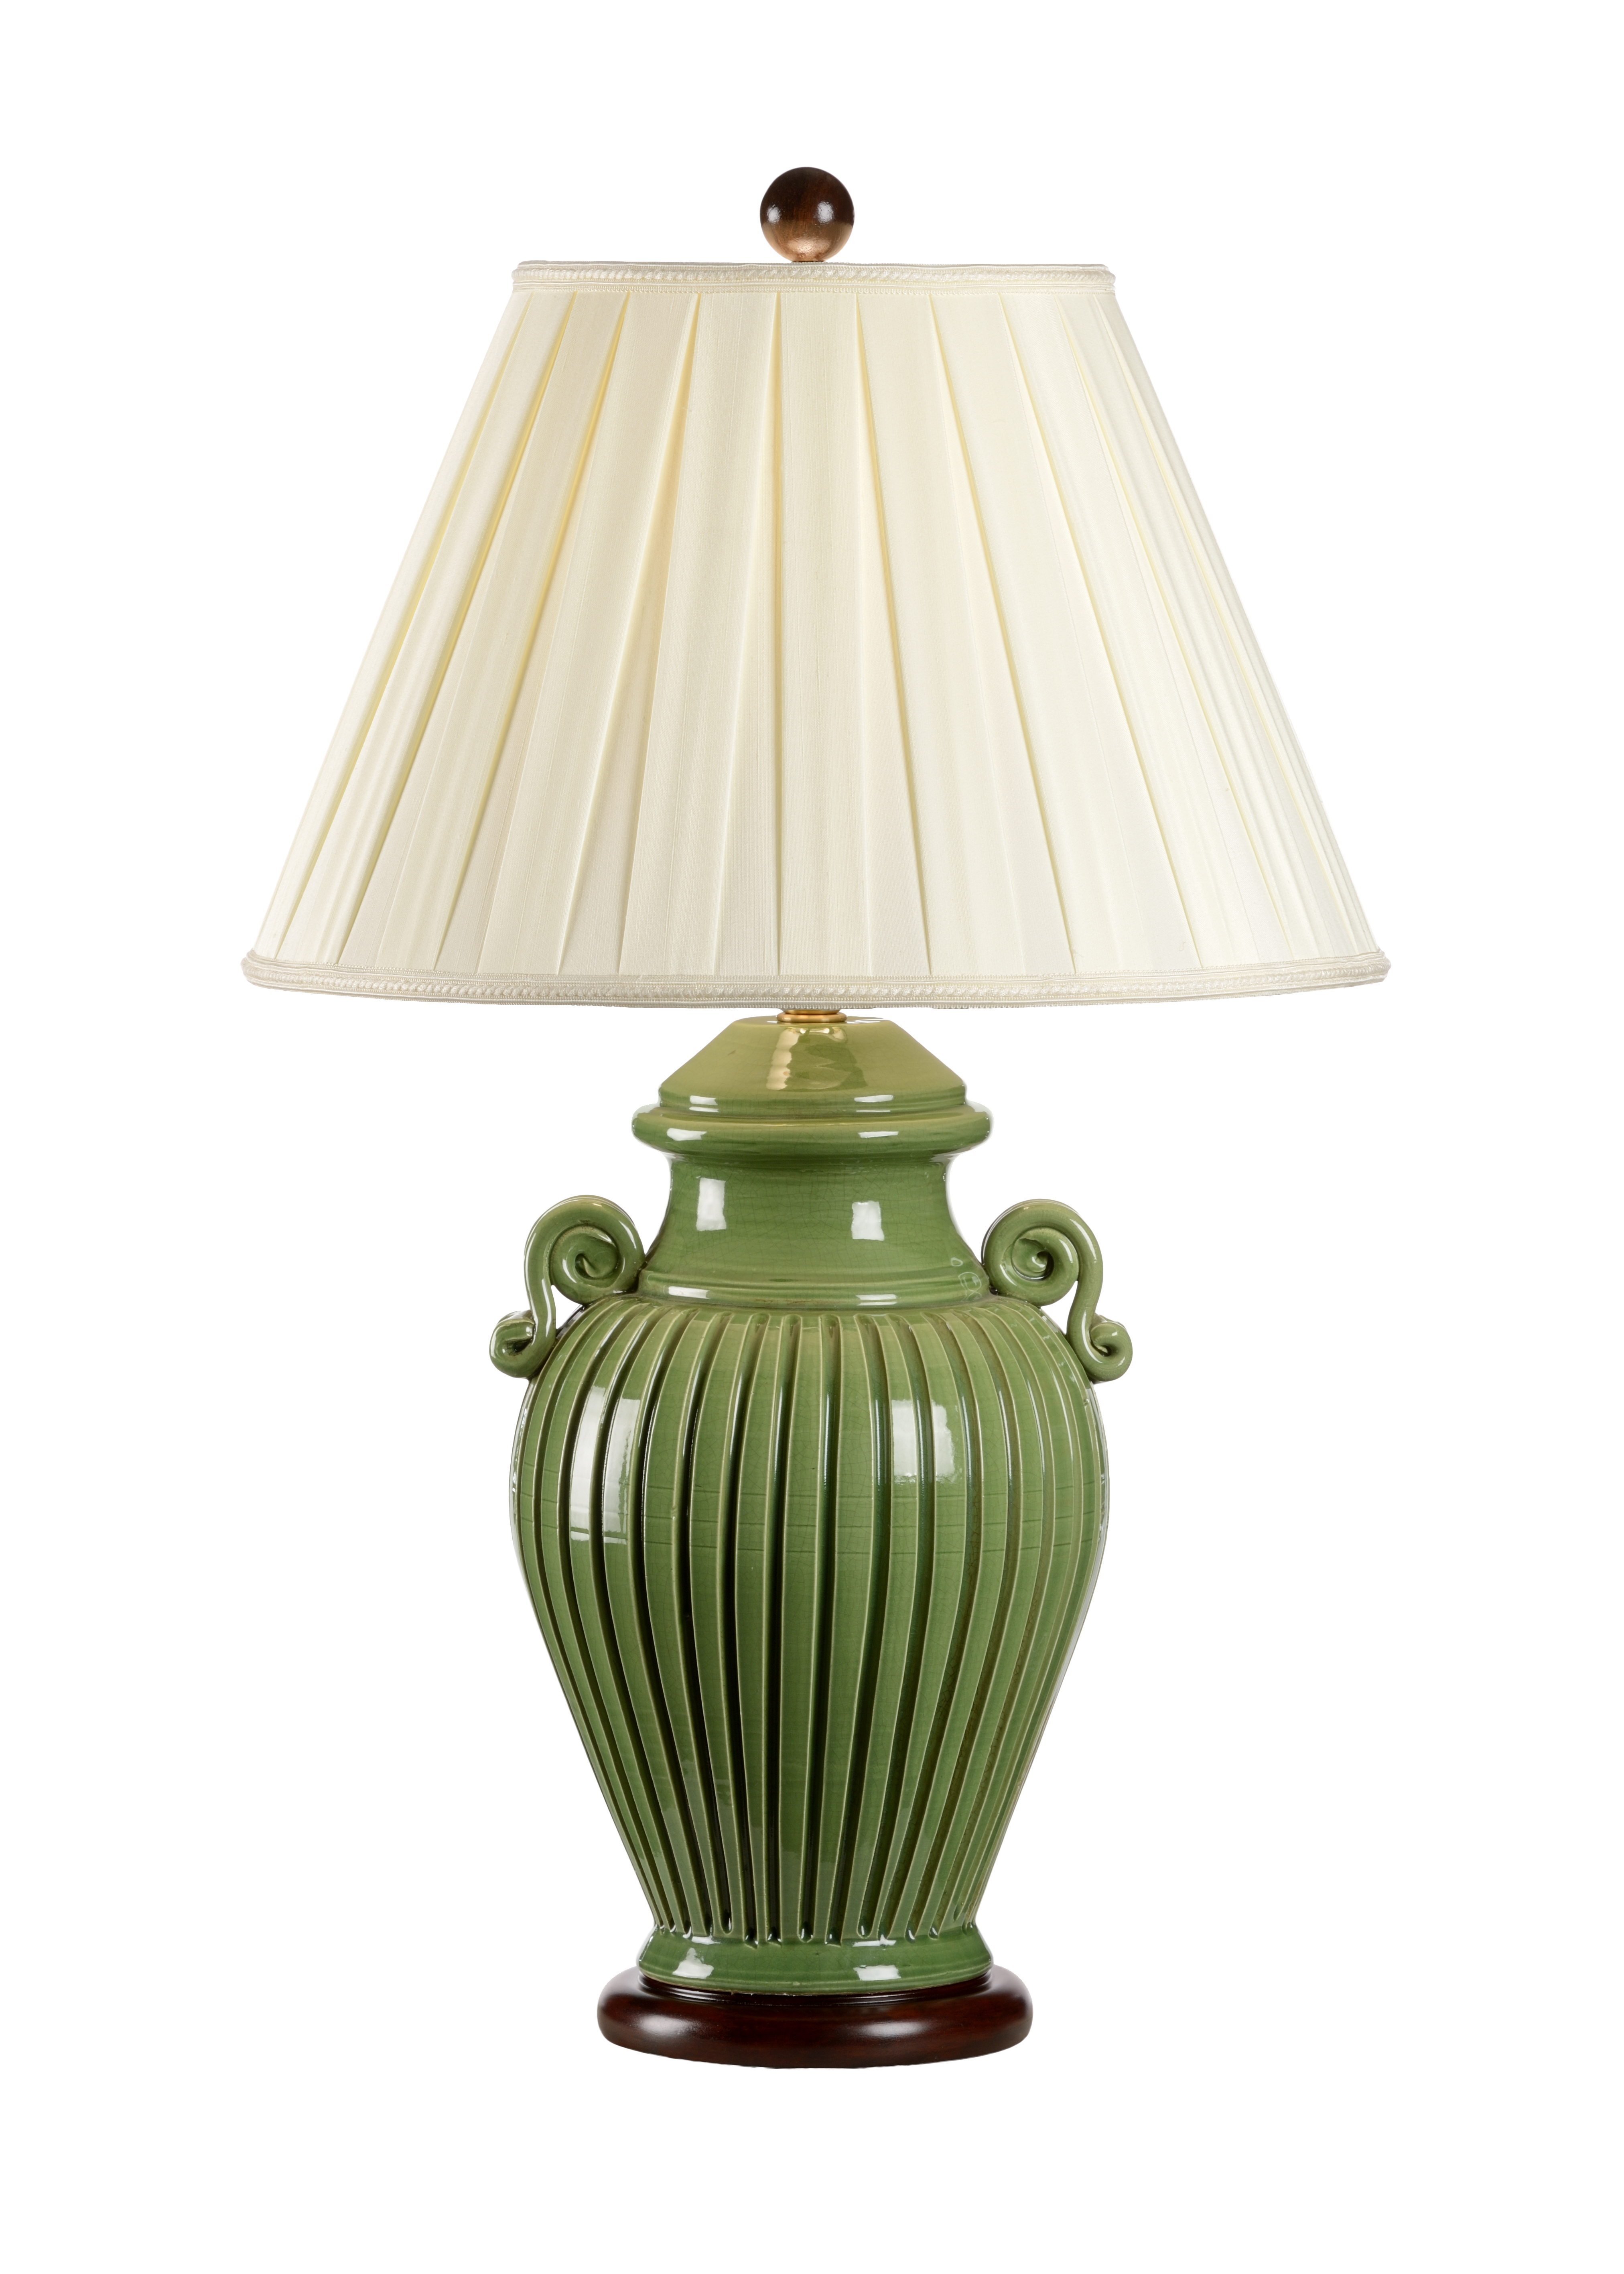 chairish vintage green lamp lamps product table glass